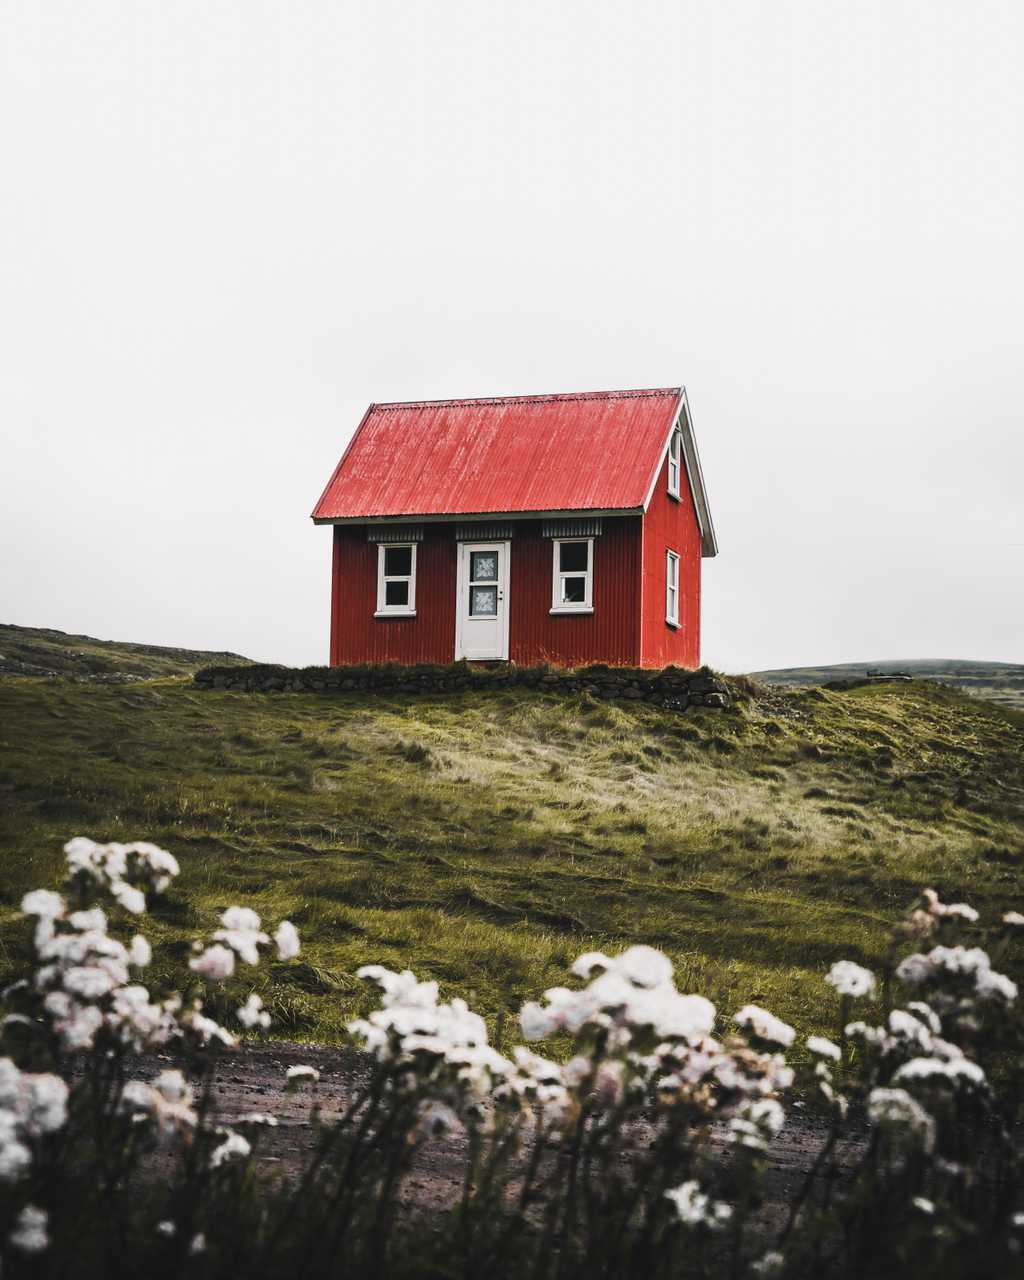 Finding a home - Unsplash / @withluke